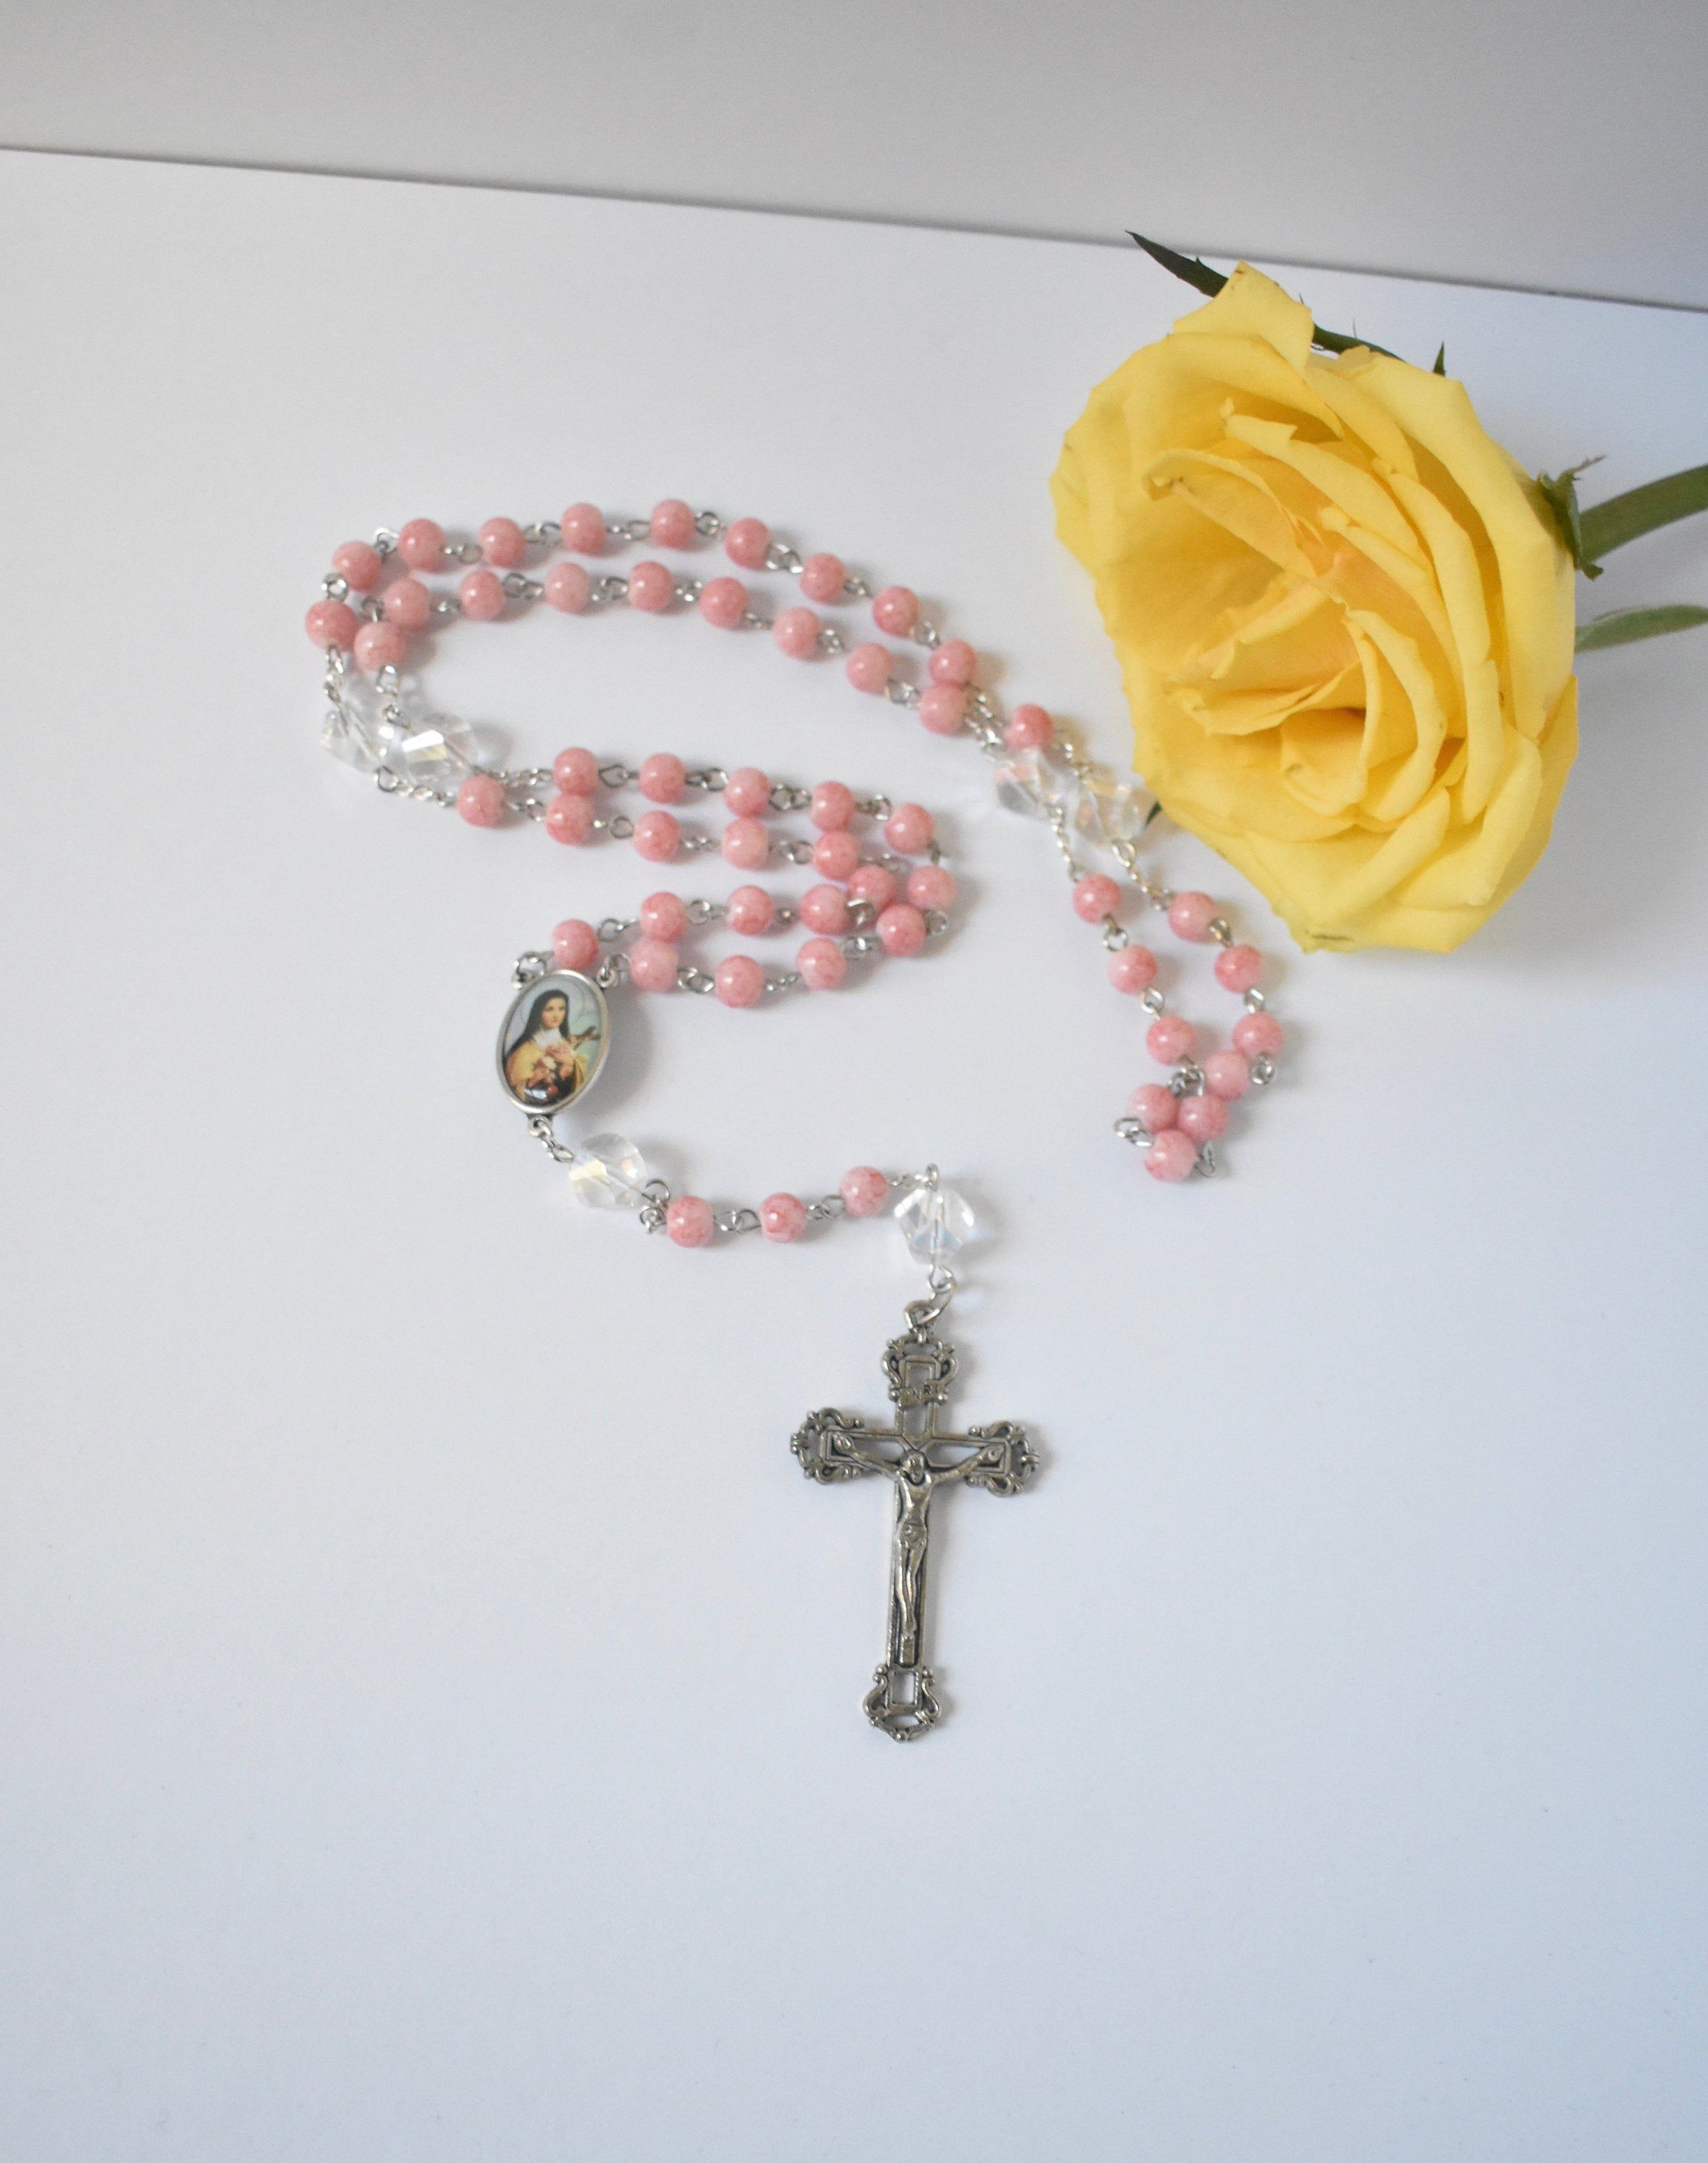 Catholic Saint Therese Pink Rosary (With images